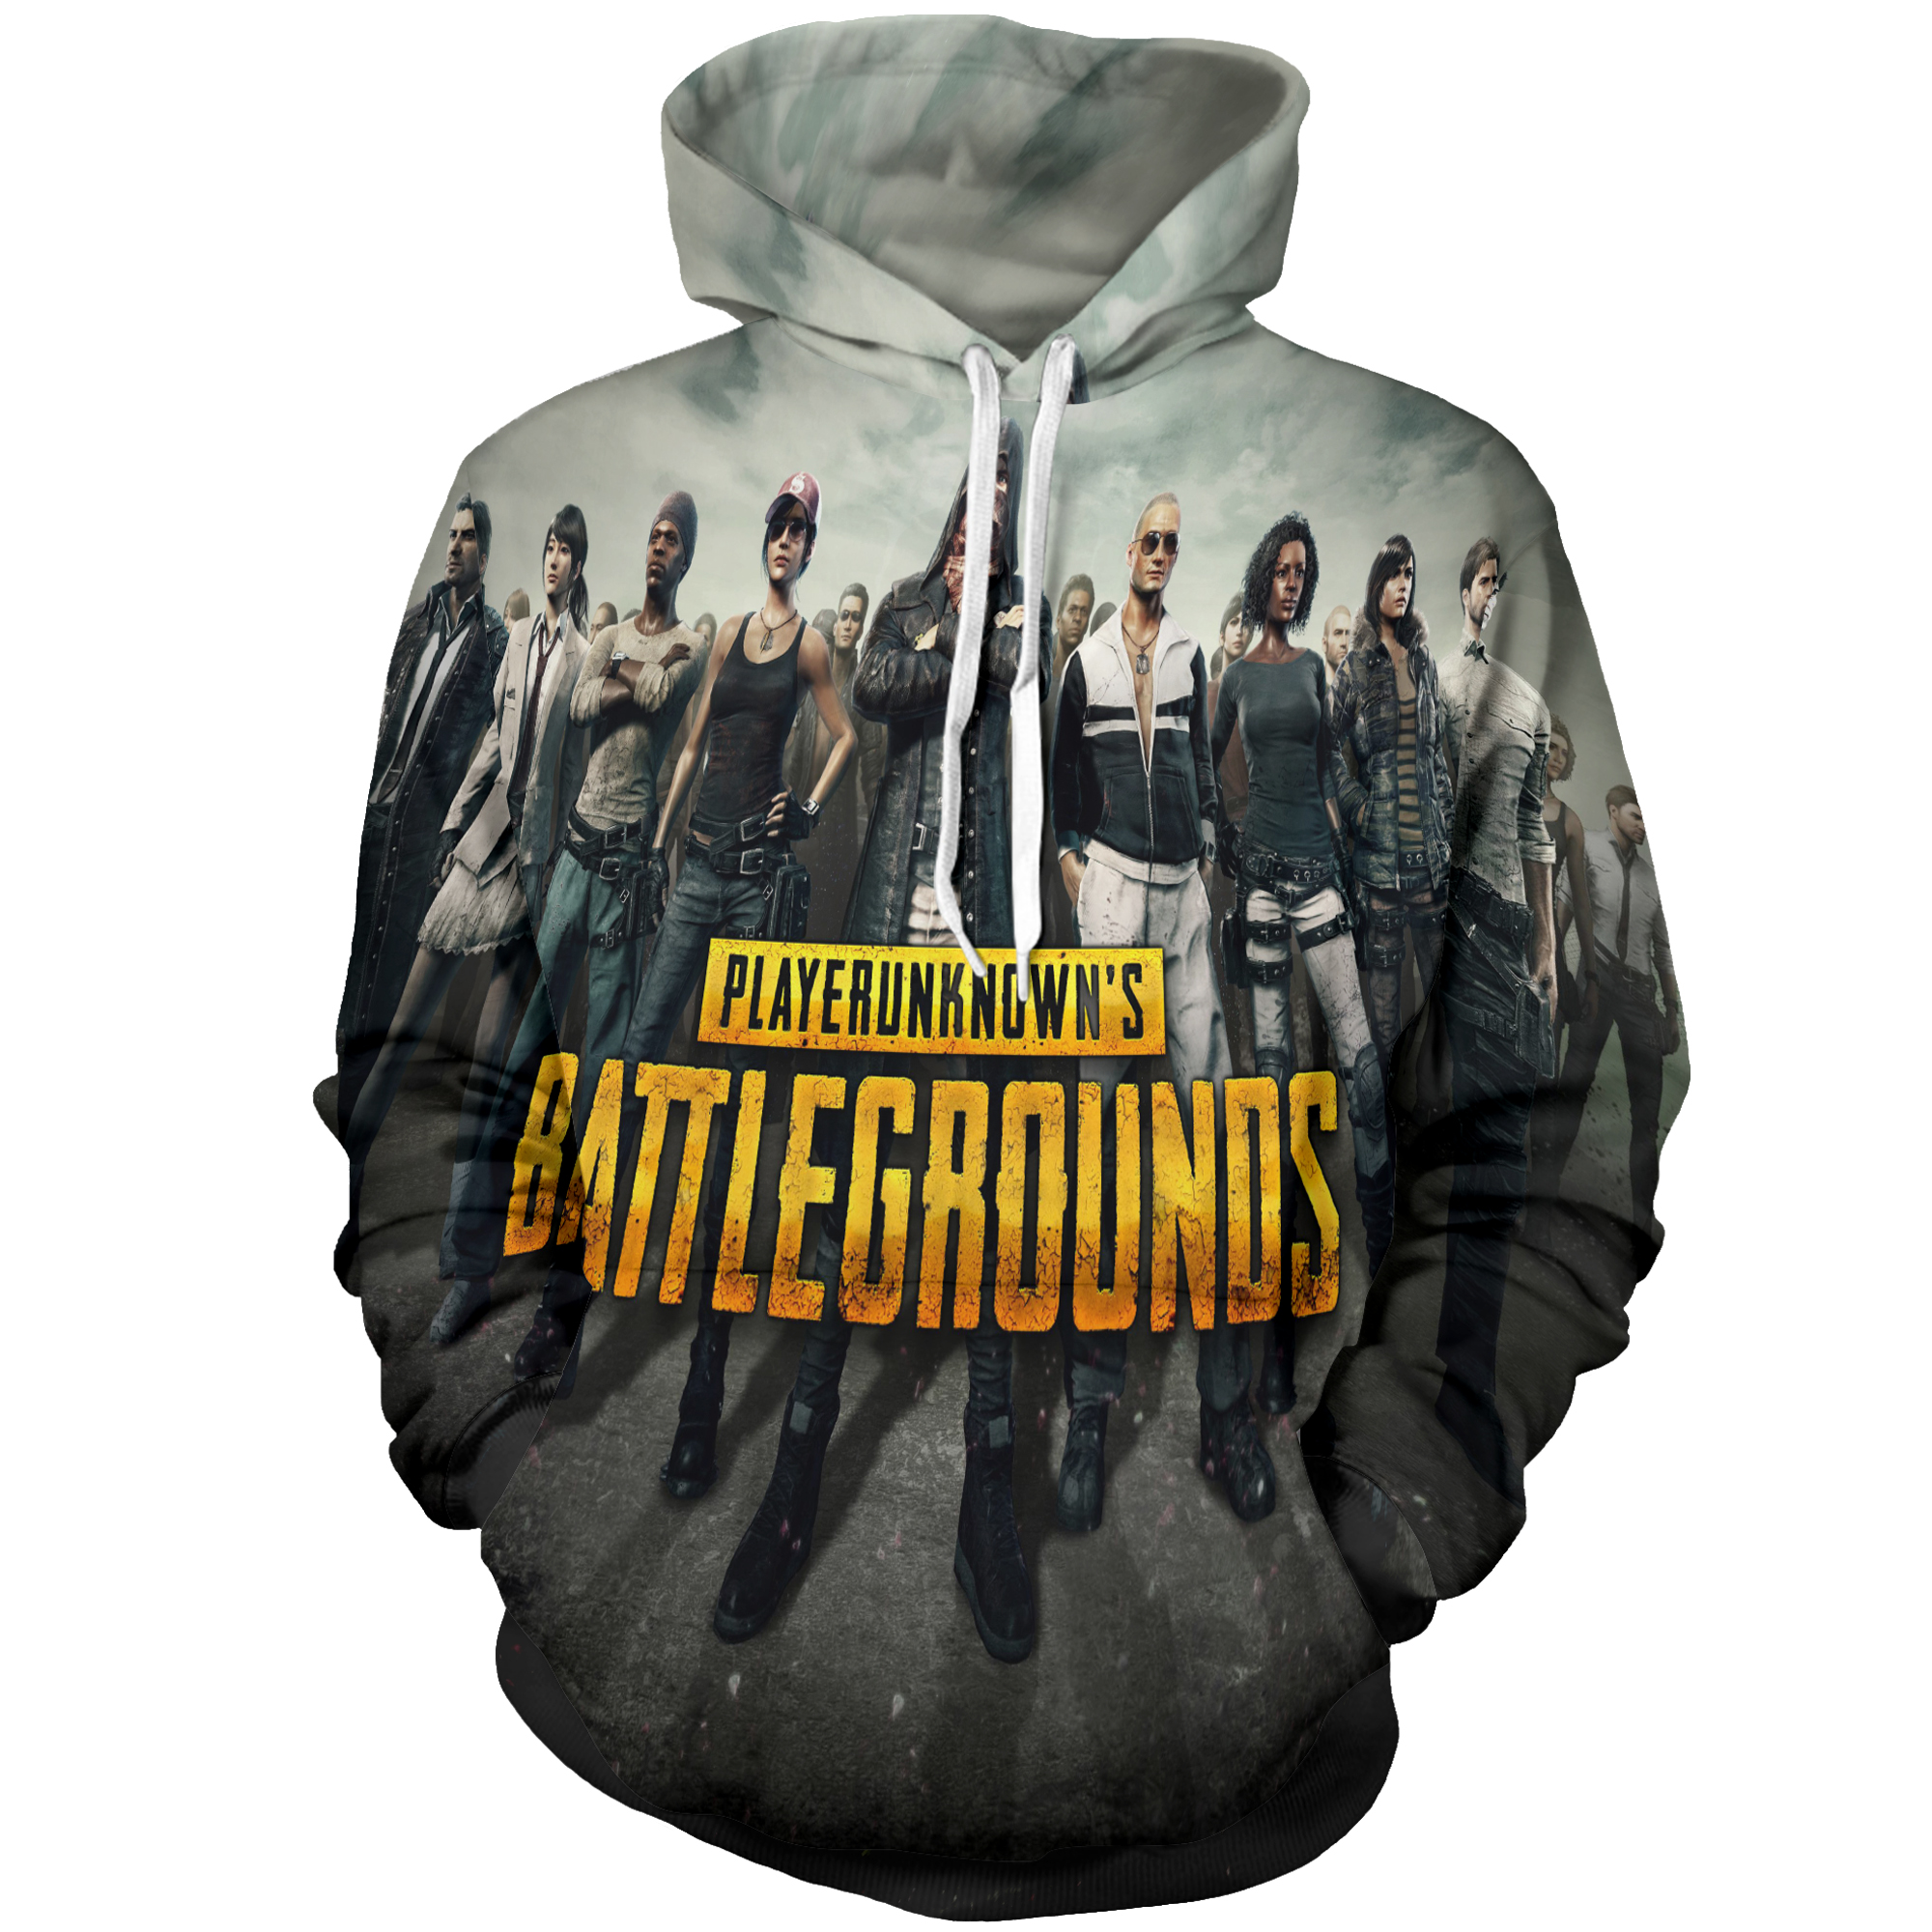 3D Hoodies Sweatshirt Battlegrounds Hot-Game 3d-Print PUBG Fashion Playerunknown's And